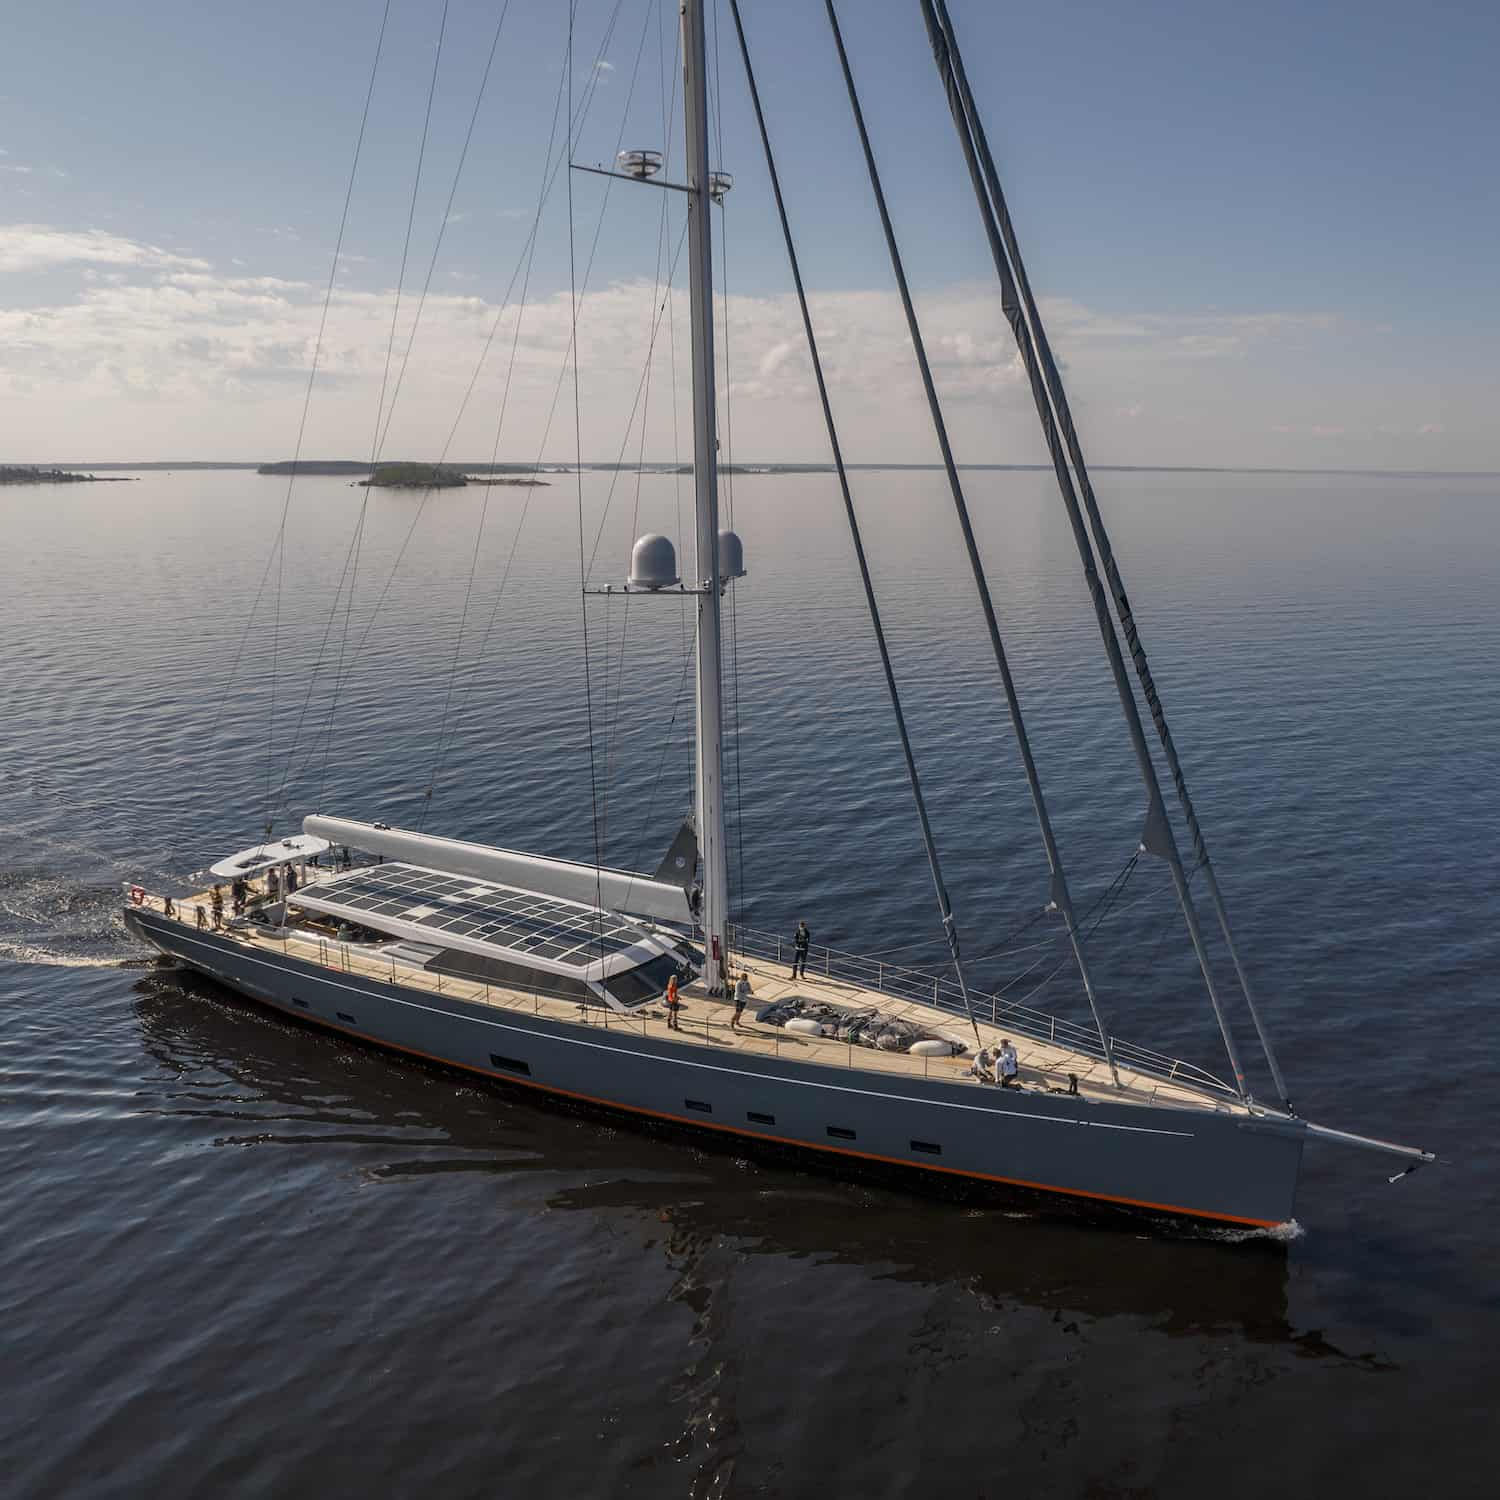 Baltic 146 PATH superyacht Solbian solar photovoltaik largest in the world walkable custom-made bespoke yacht sailing drone